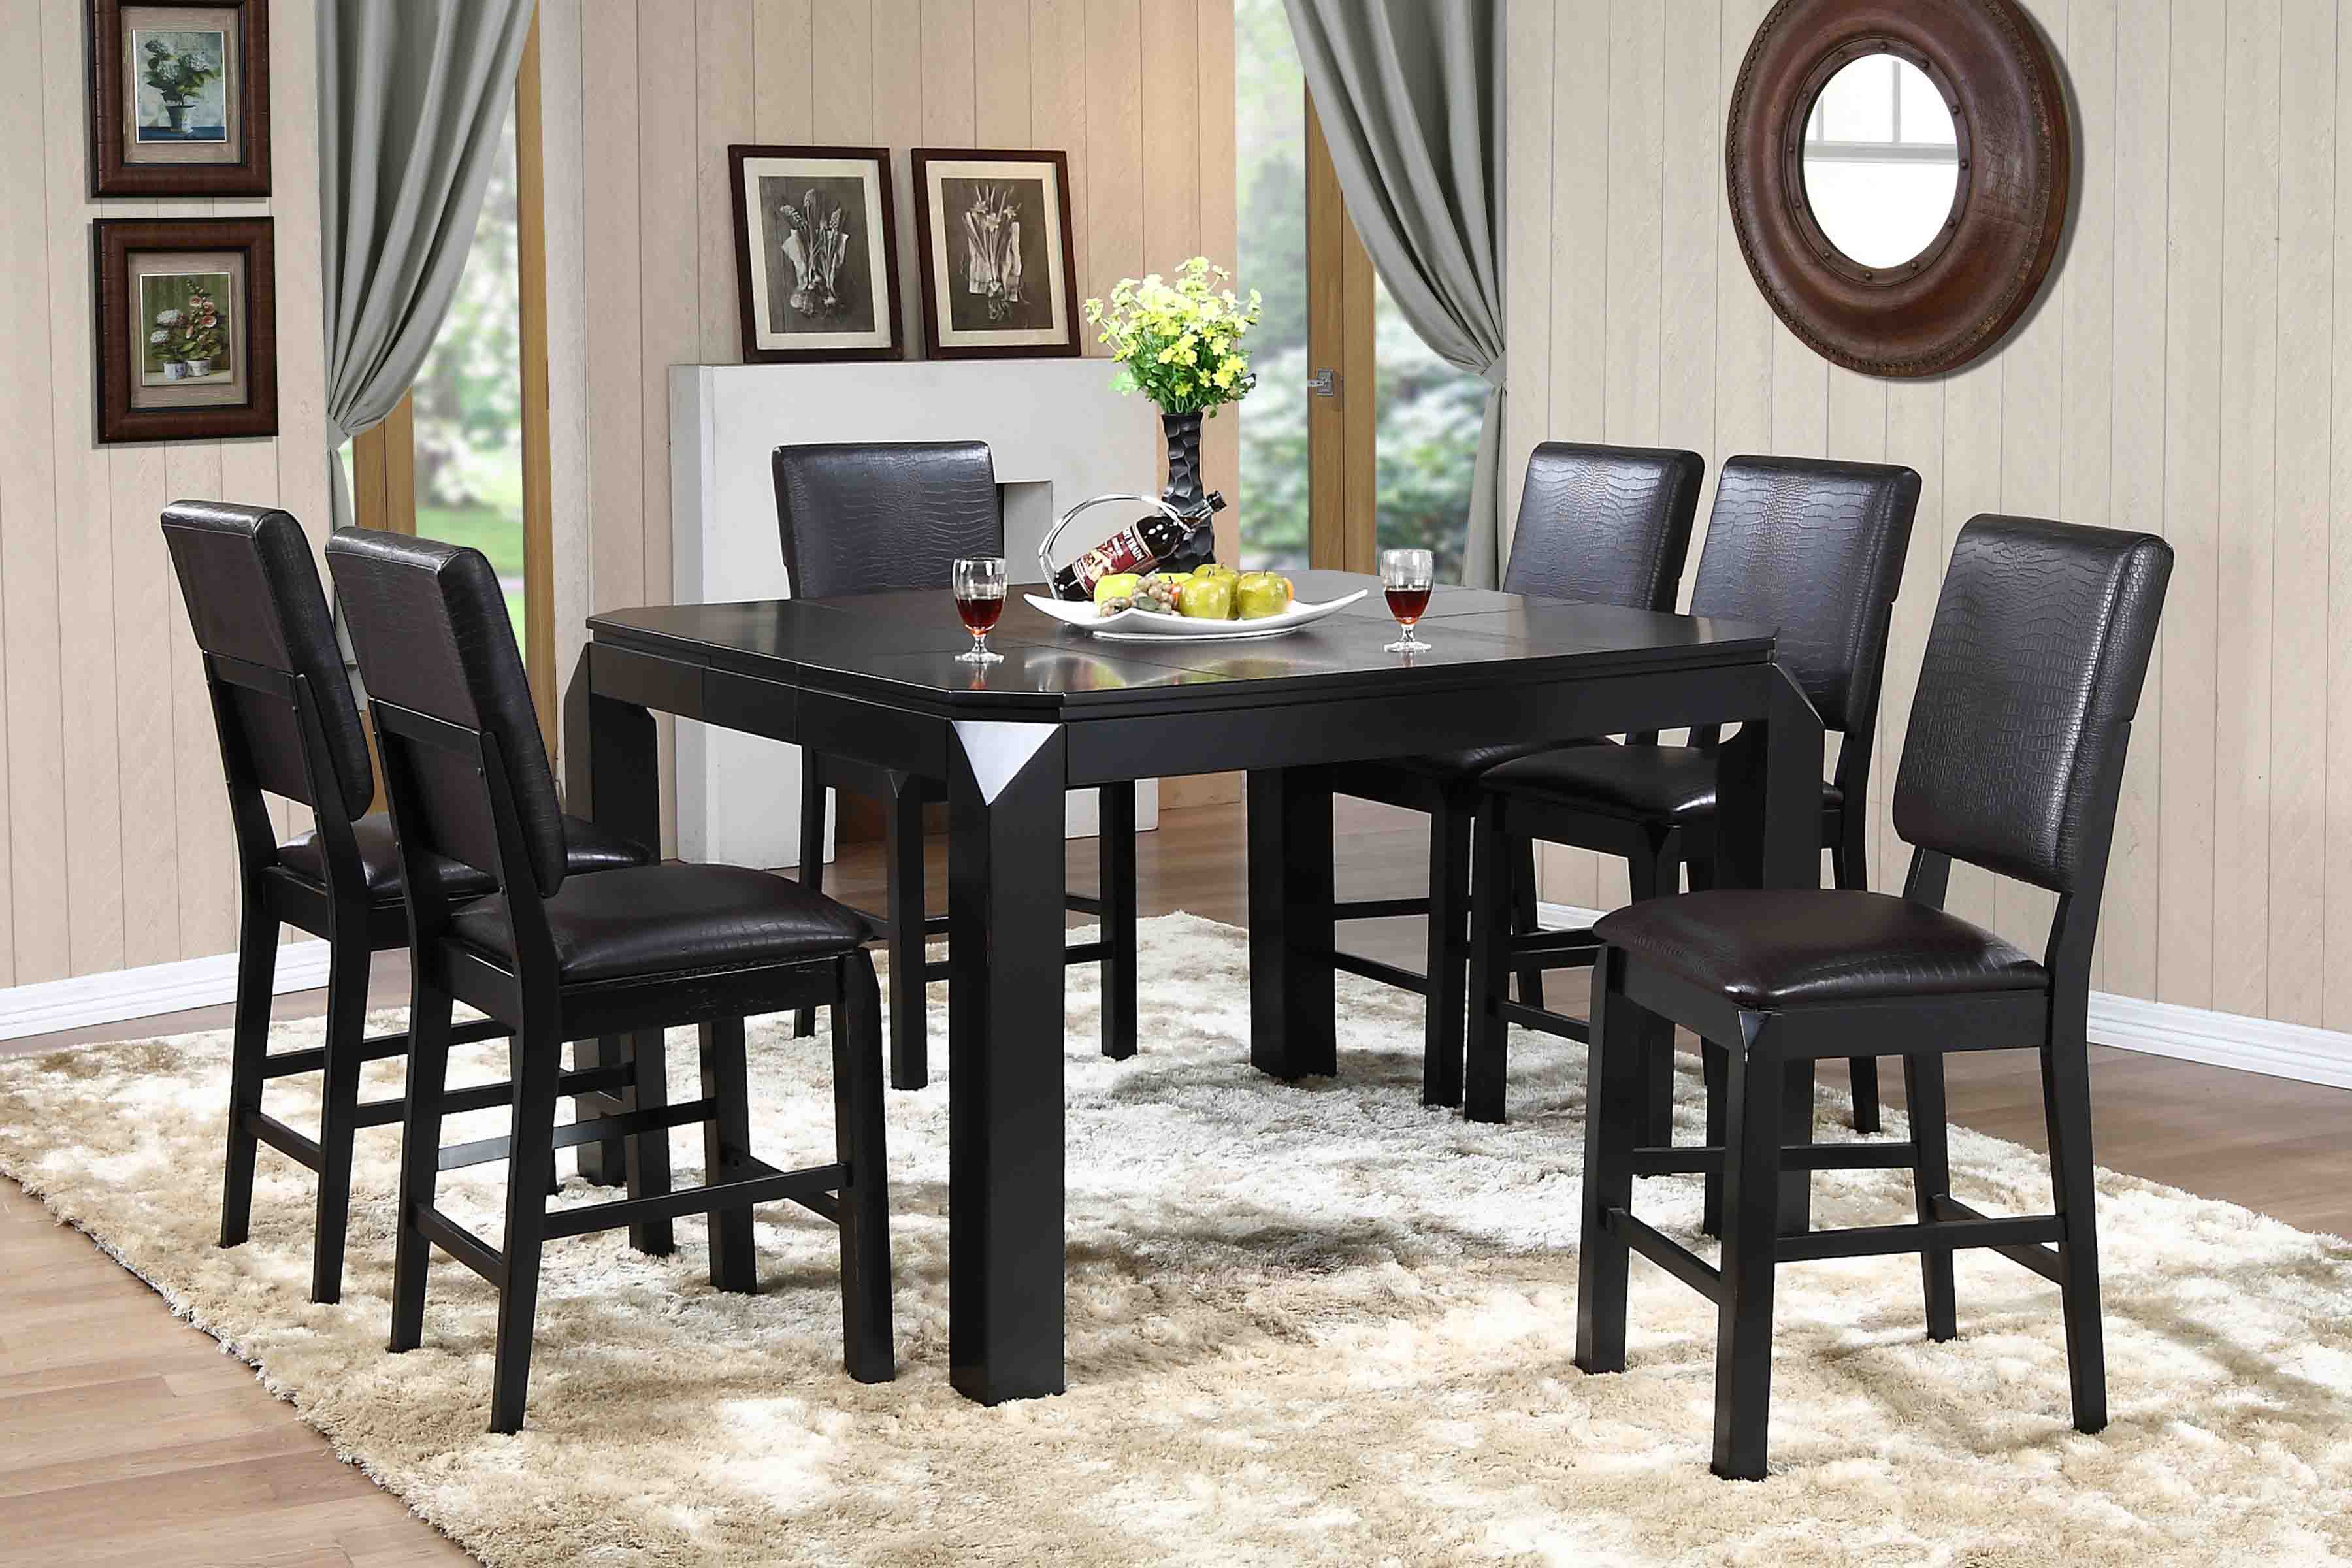 D1635 Bello Counter Dining Set